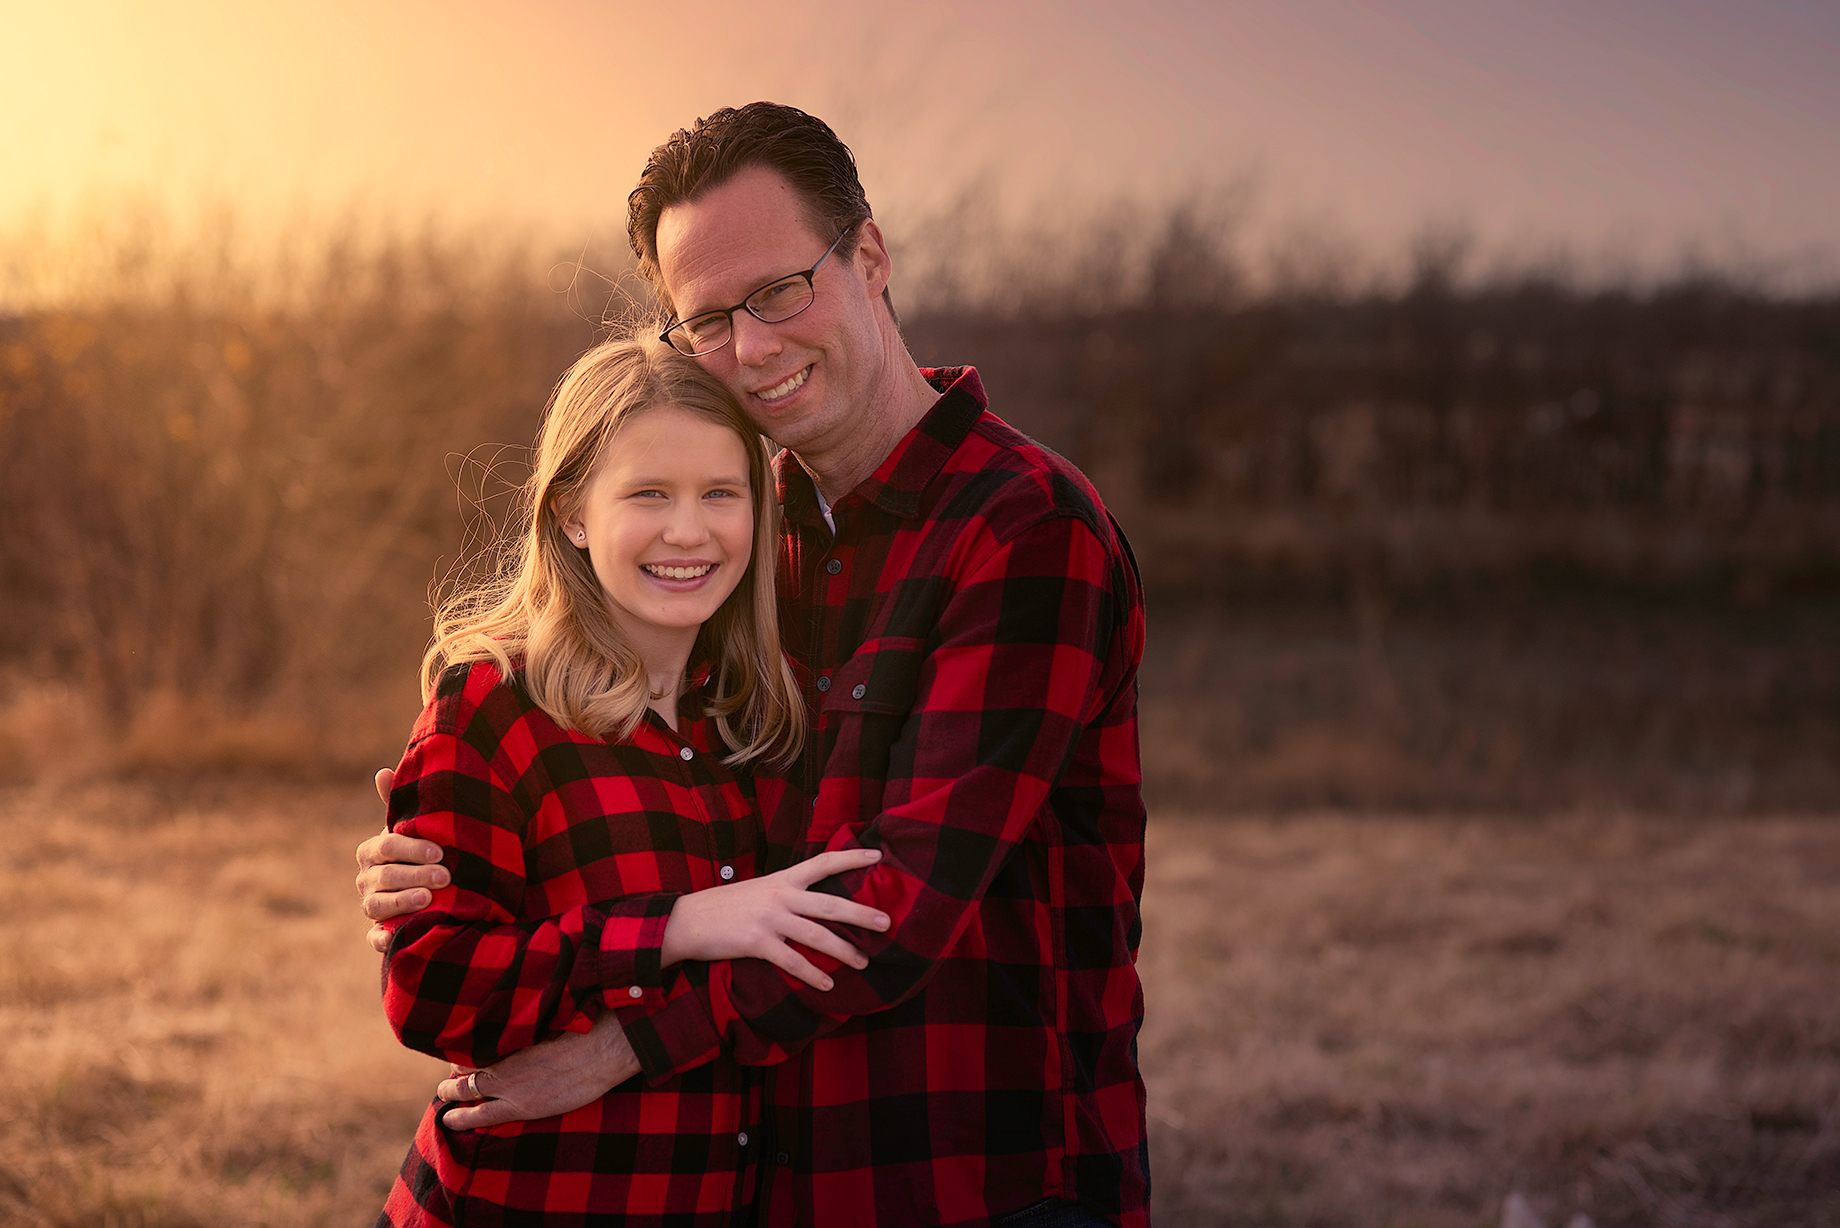 McKinney Texas Family Portrait of Father and Daughter Hugging During Sunset